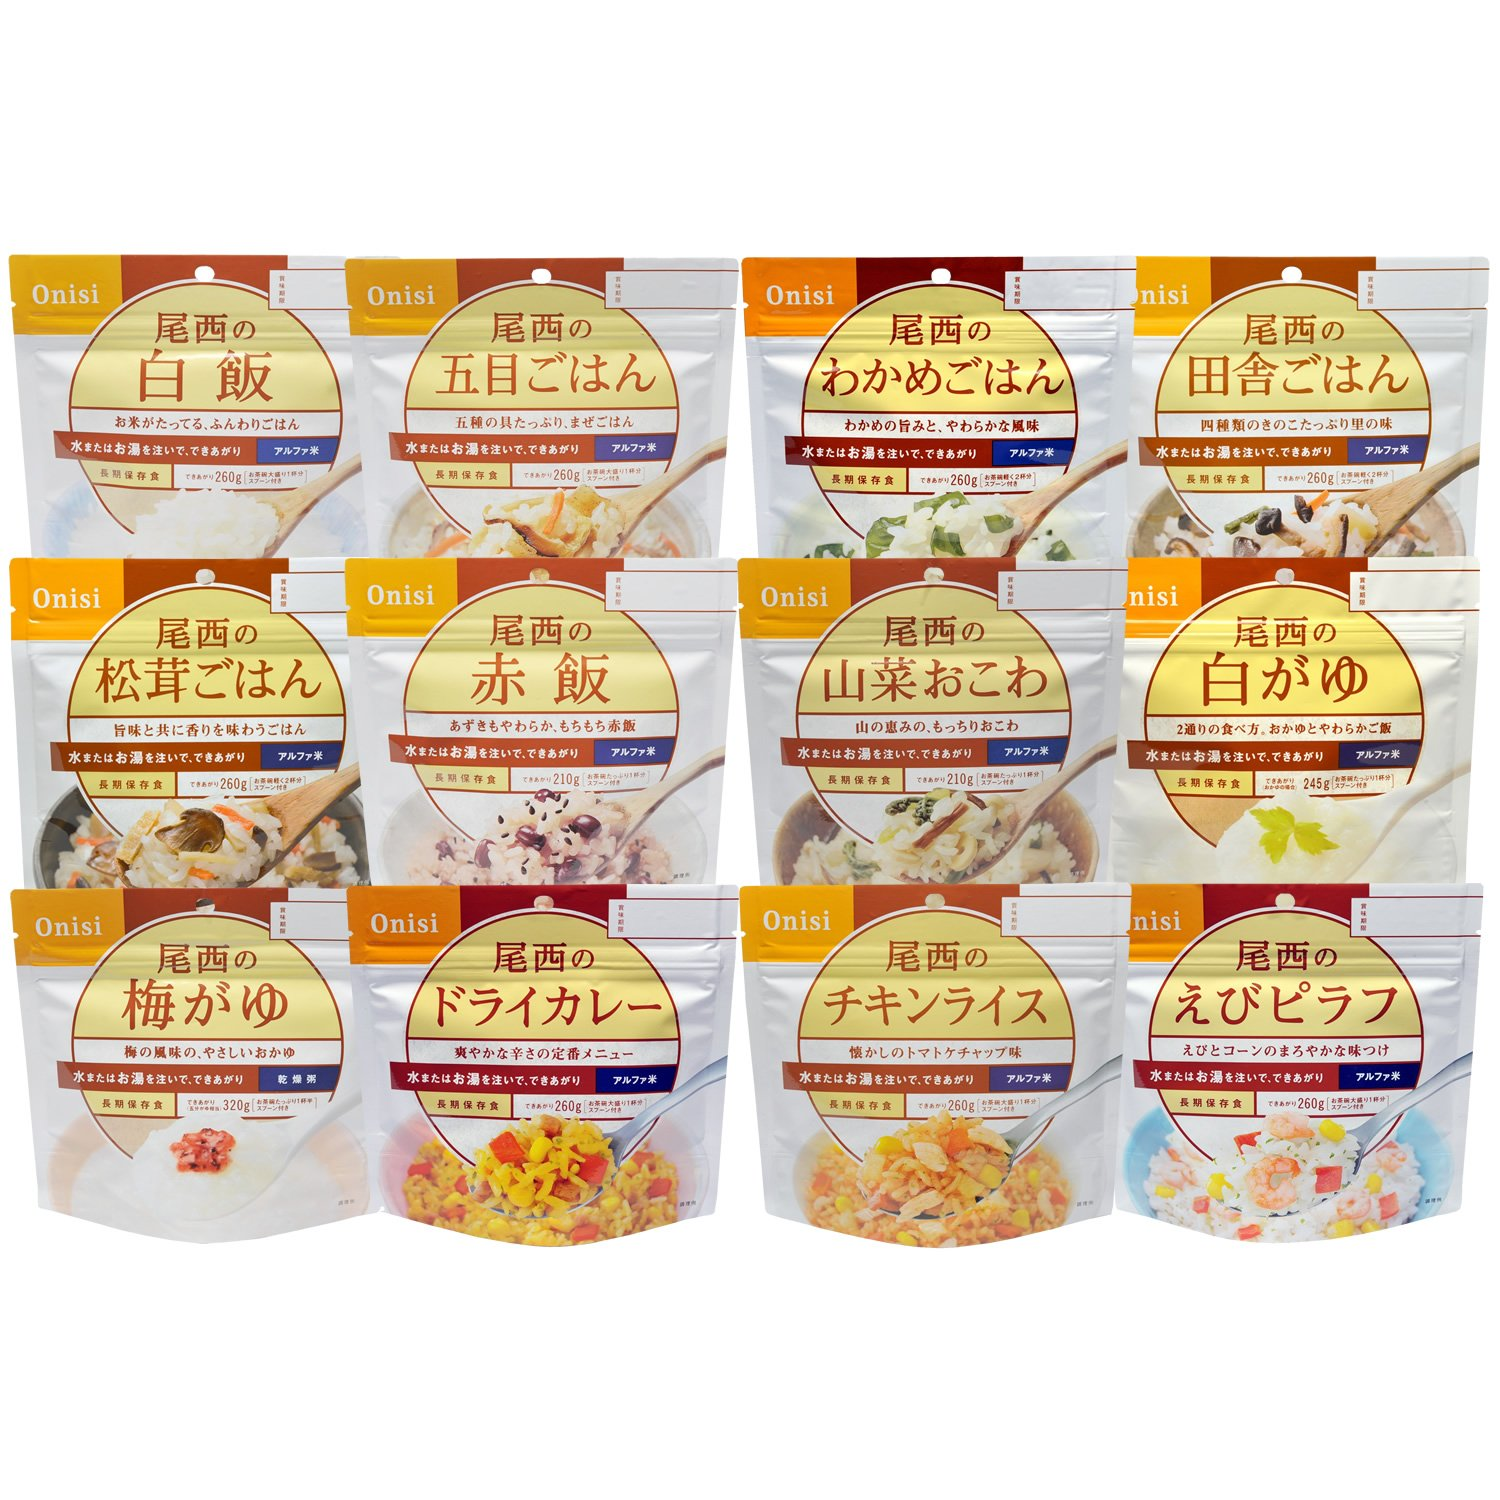 Bisai food alpha rice 12 types all set (emergency food five years save Kakuaji one meal X12 type) by Cybozu